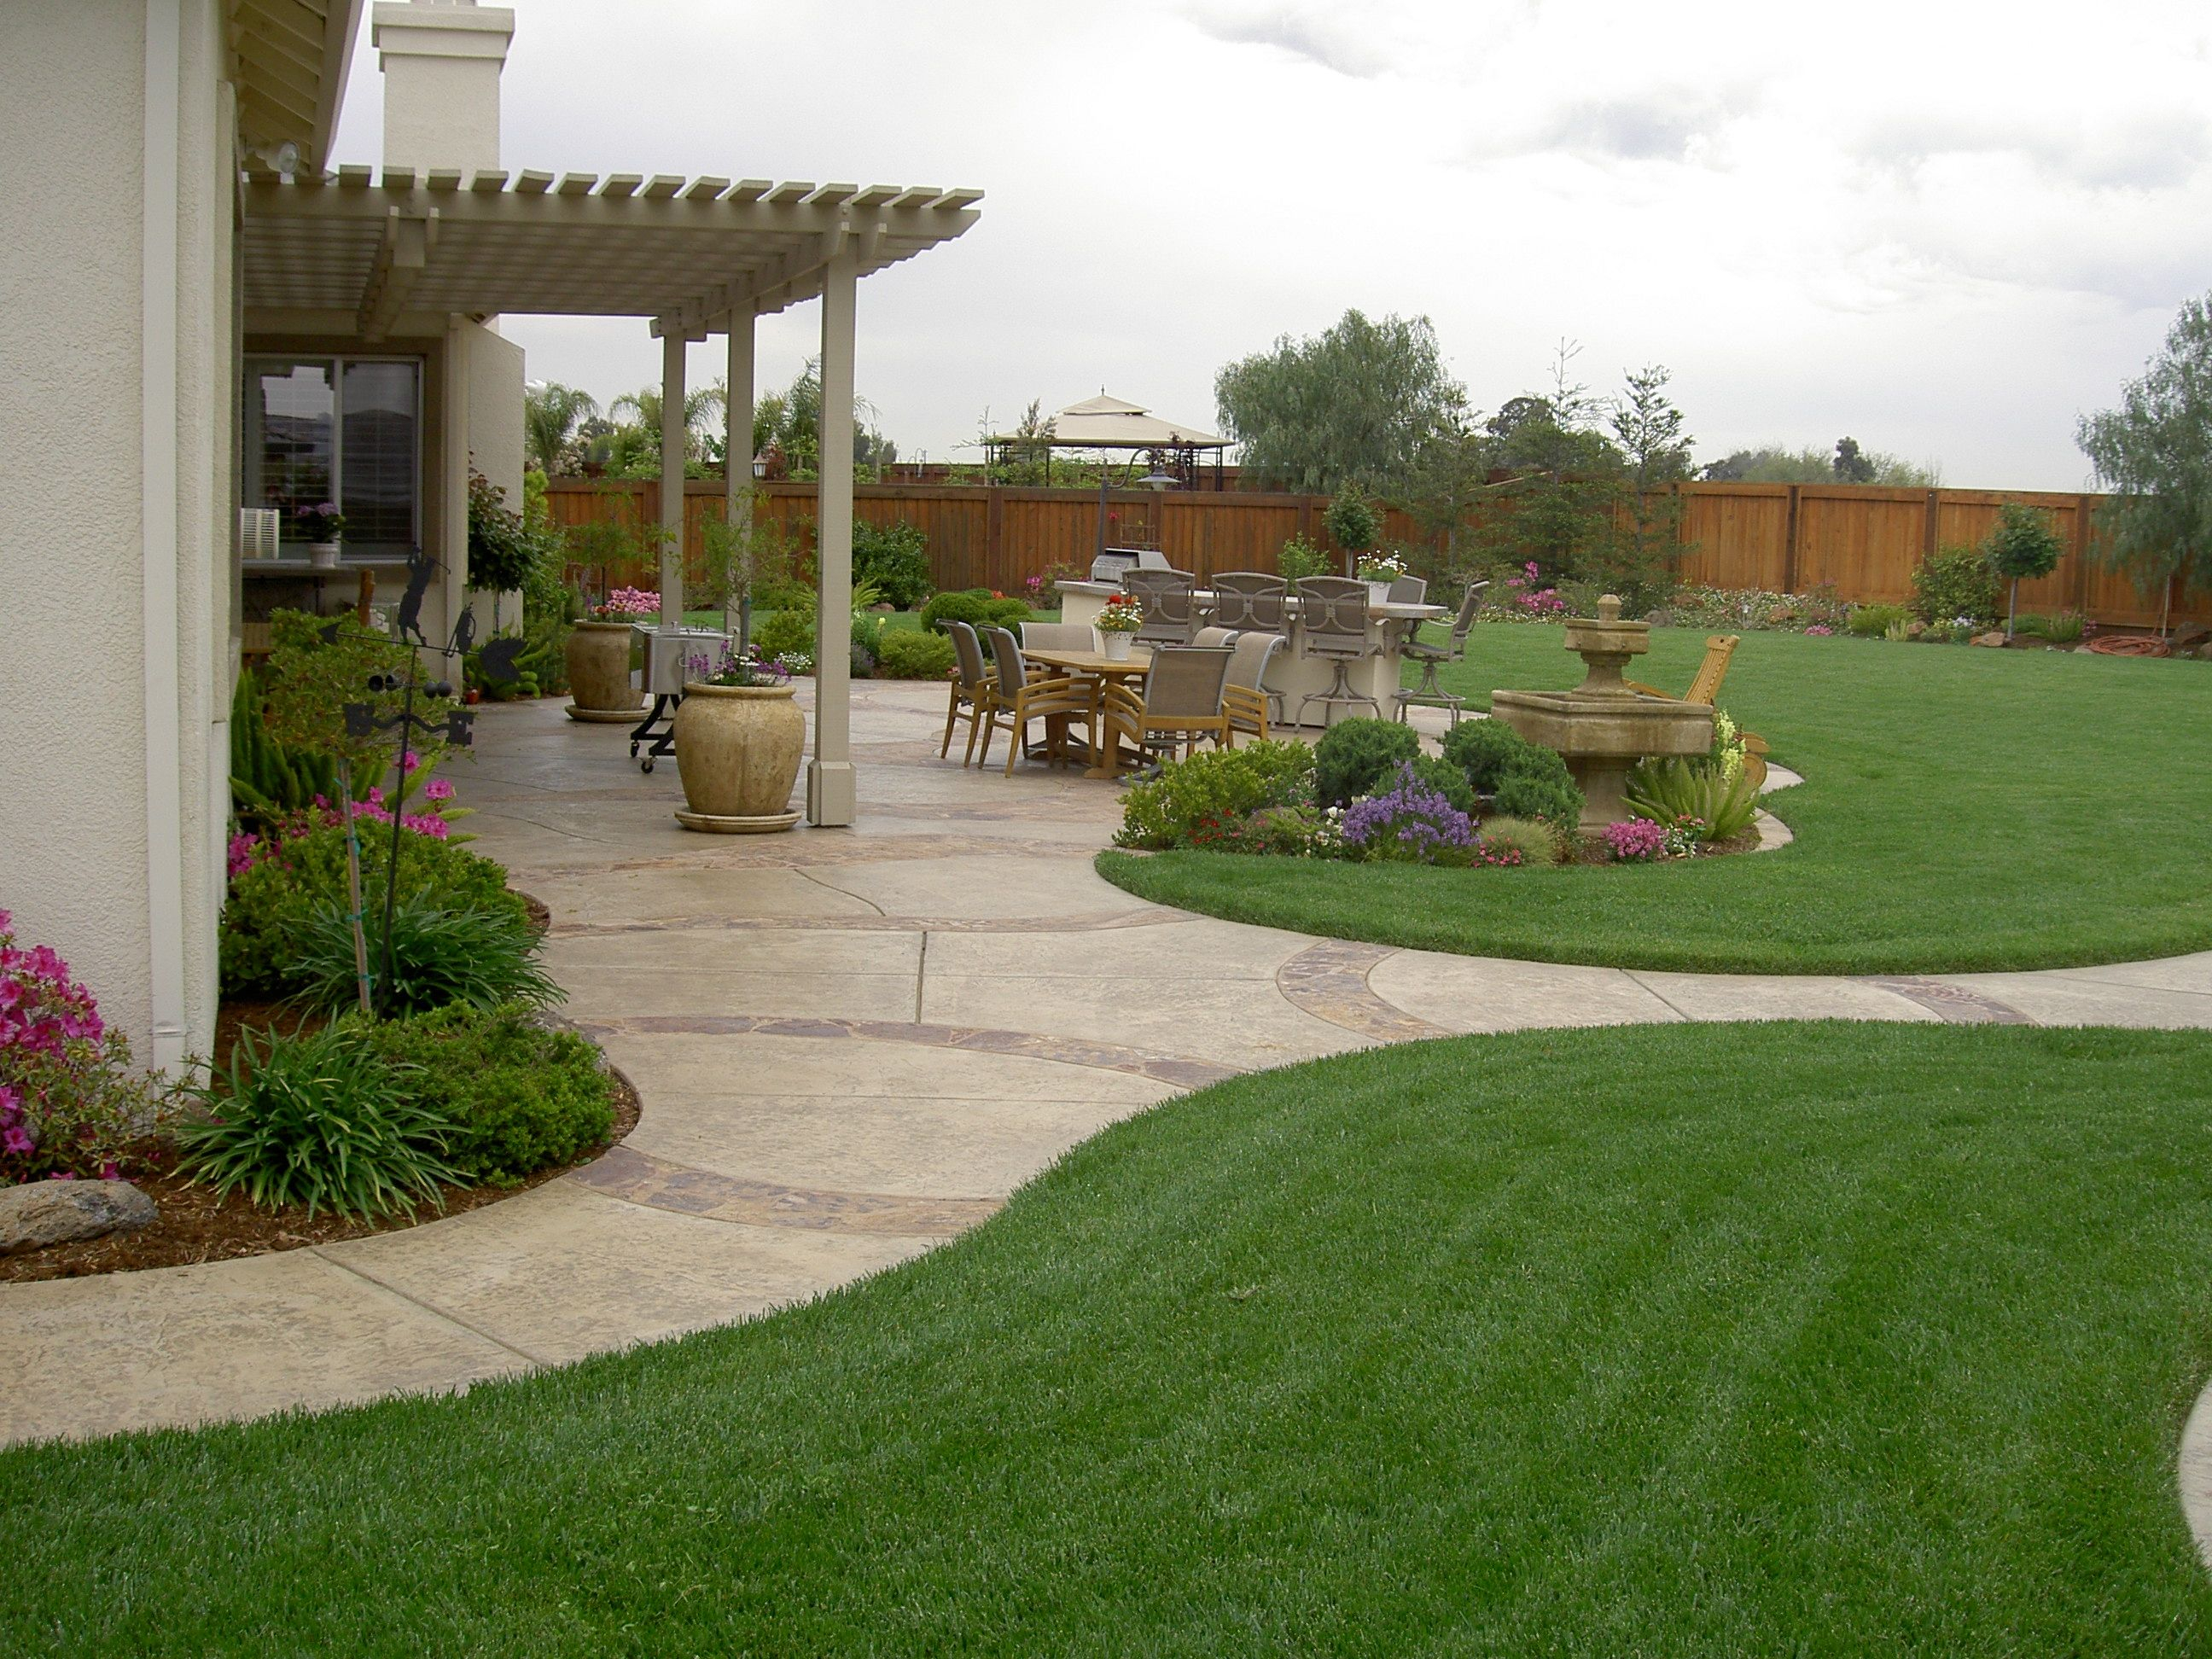 20 Awesome Landscaping Ideas For Your Backyard Gardensoutdoor for Backyard Landscape Planner